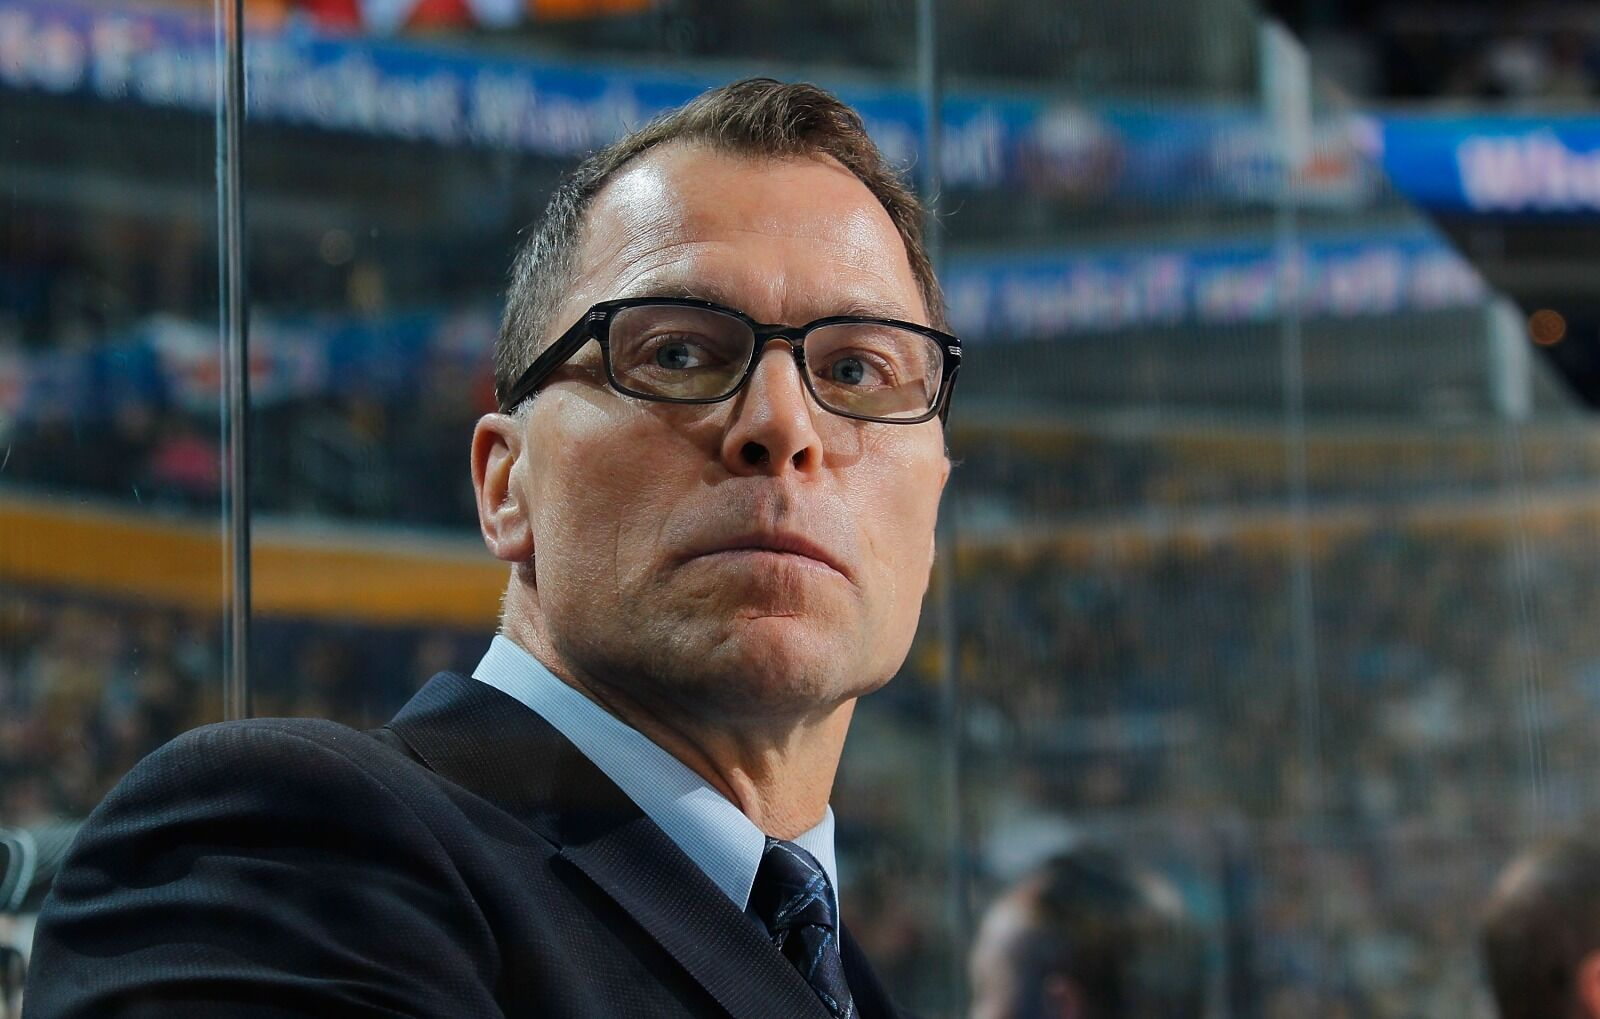 New Jersey Devils should consider hiring Scott Stevens as head coach